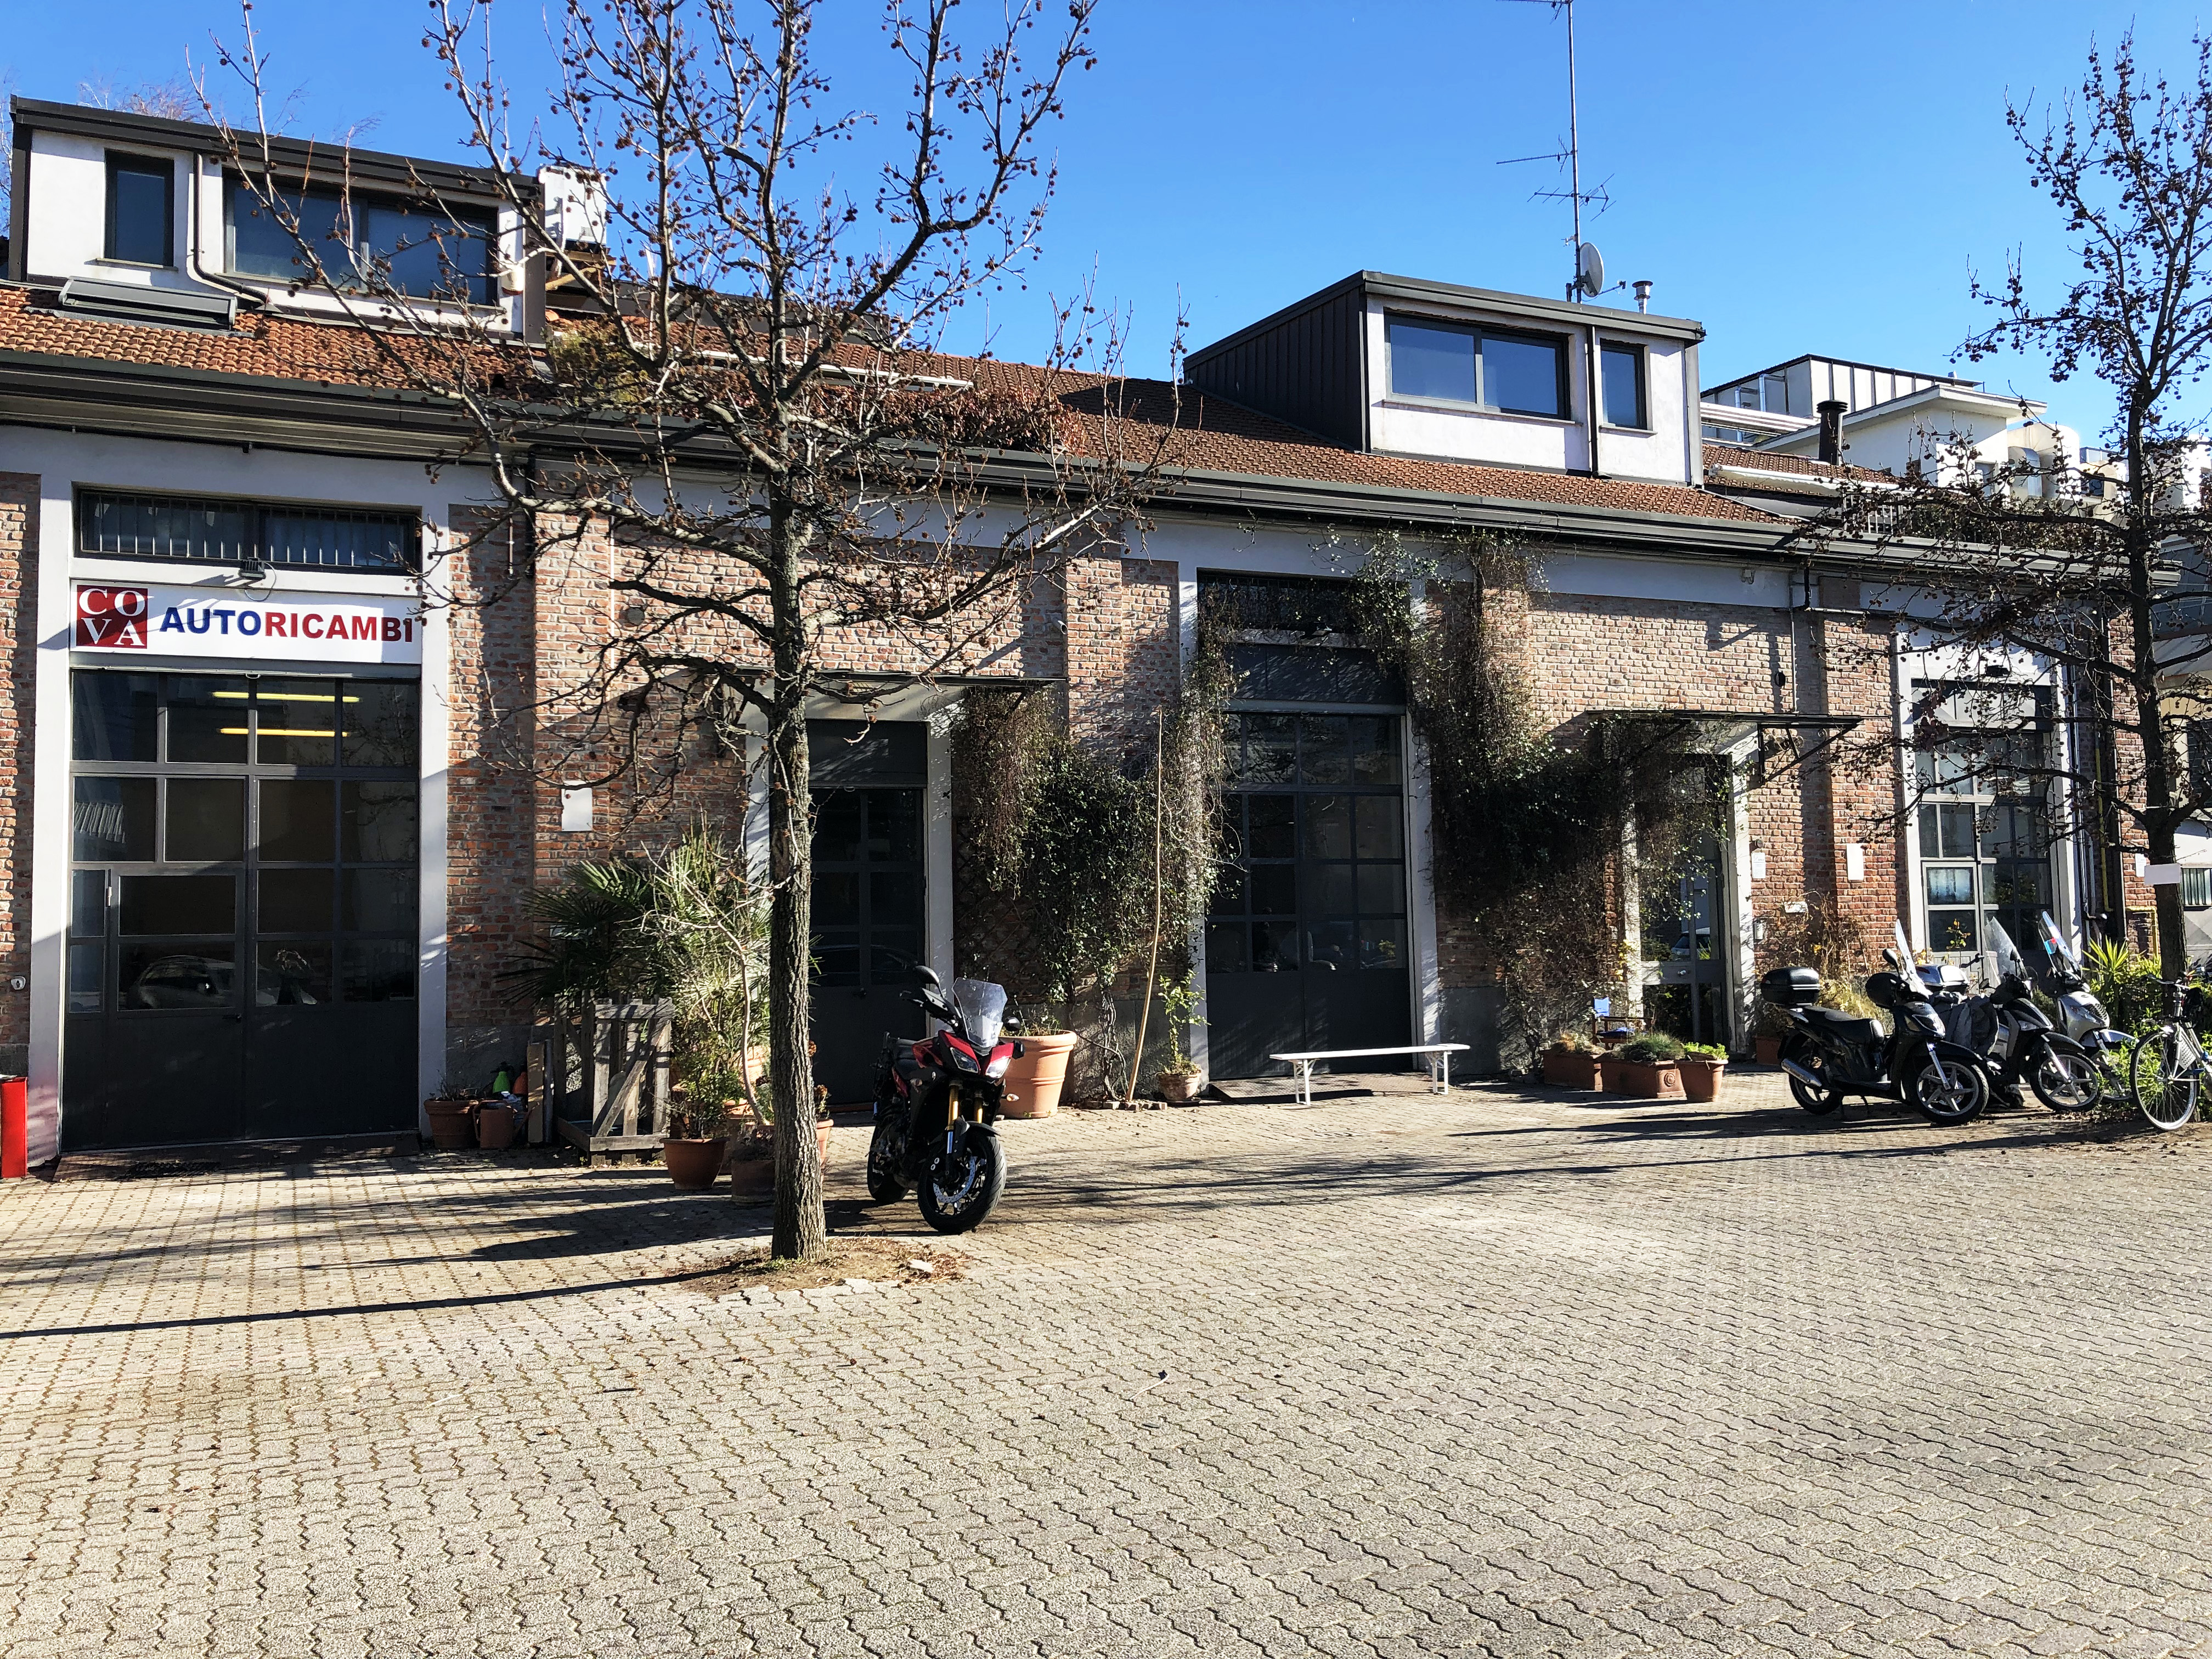 Officina3 - Open space, Spazio industriale di 200mq in Via Tortona 31  | location disallestita 6